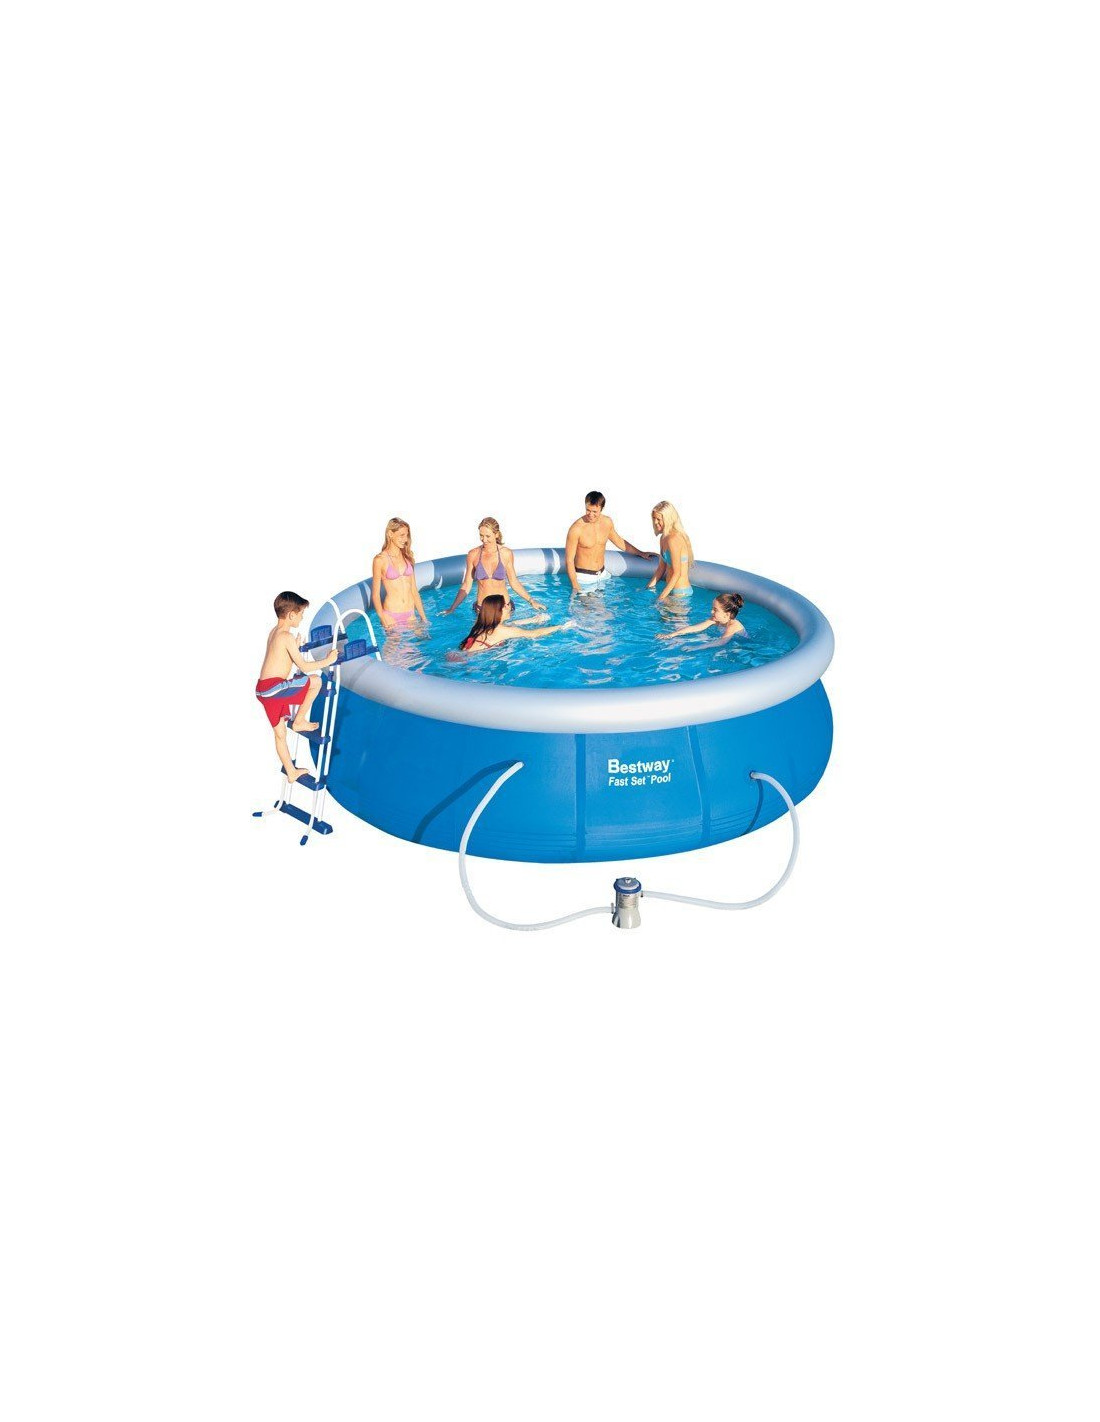 Piscine gonflable bestway - Filtre piscine gonflable ...